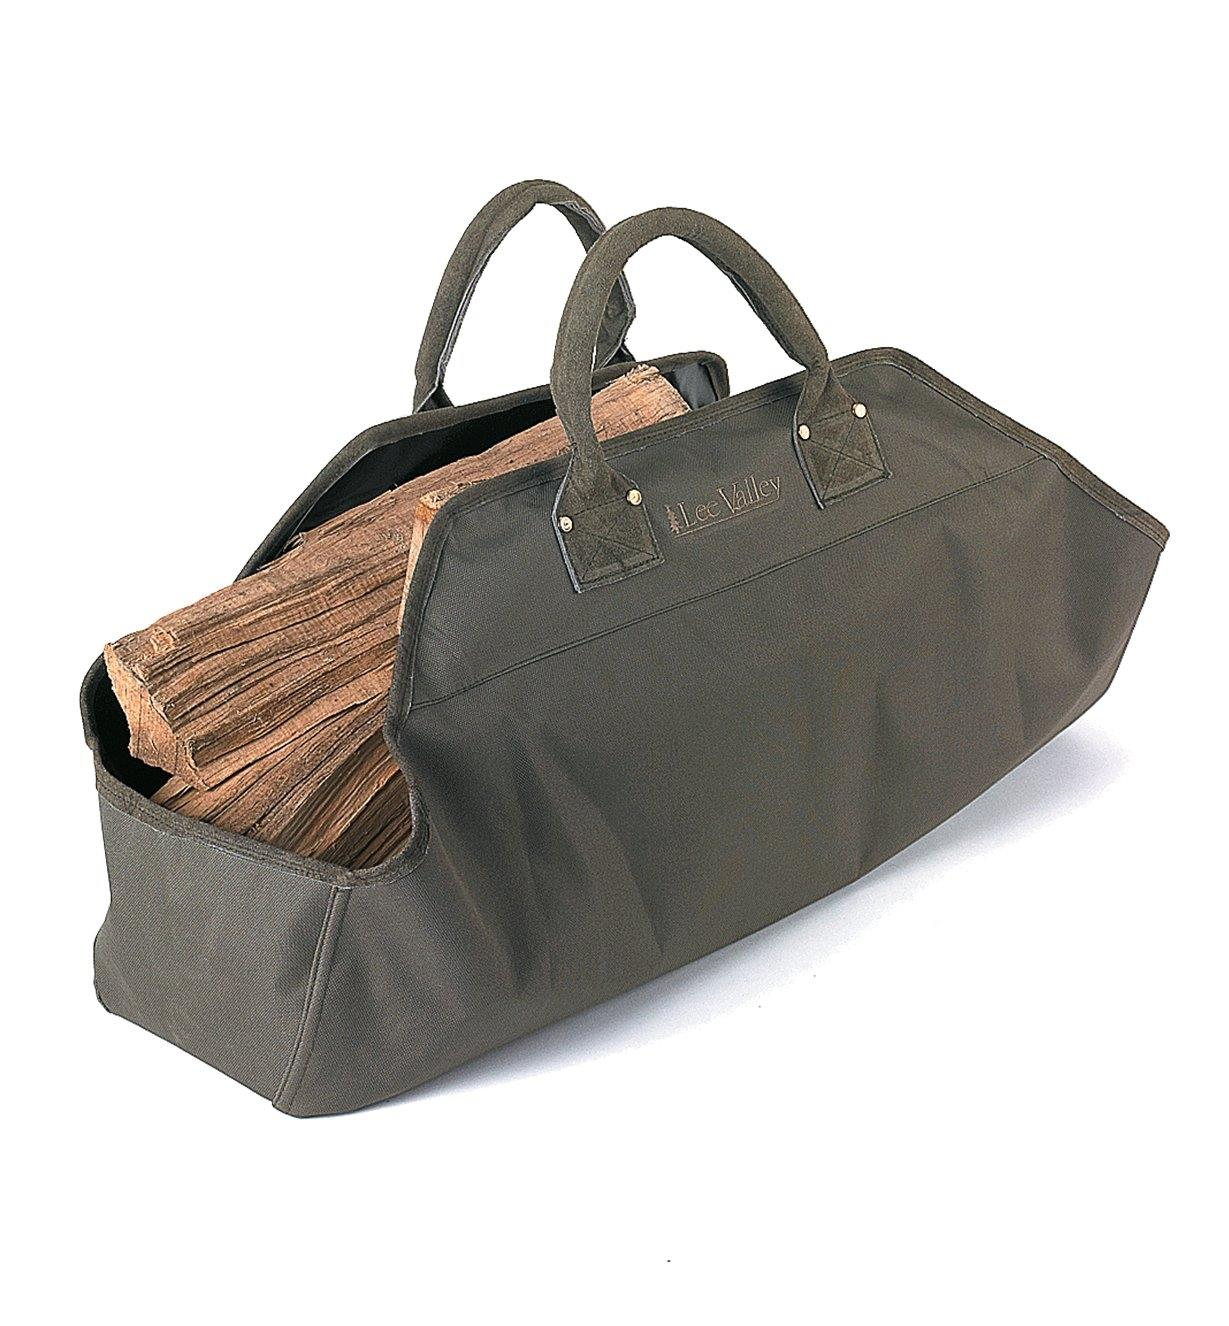 Lee Valley Firewood Tote filled with firewood